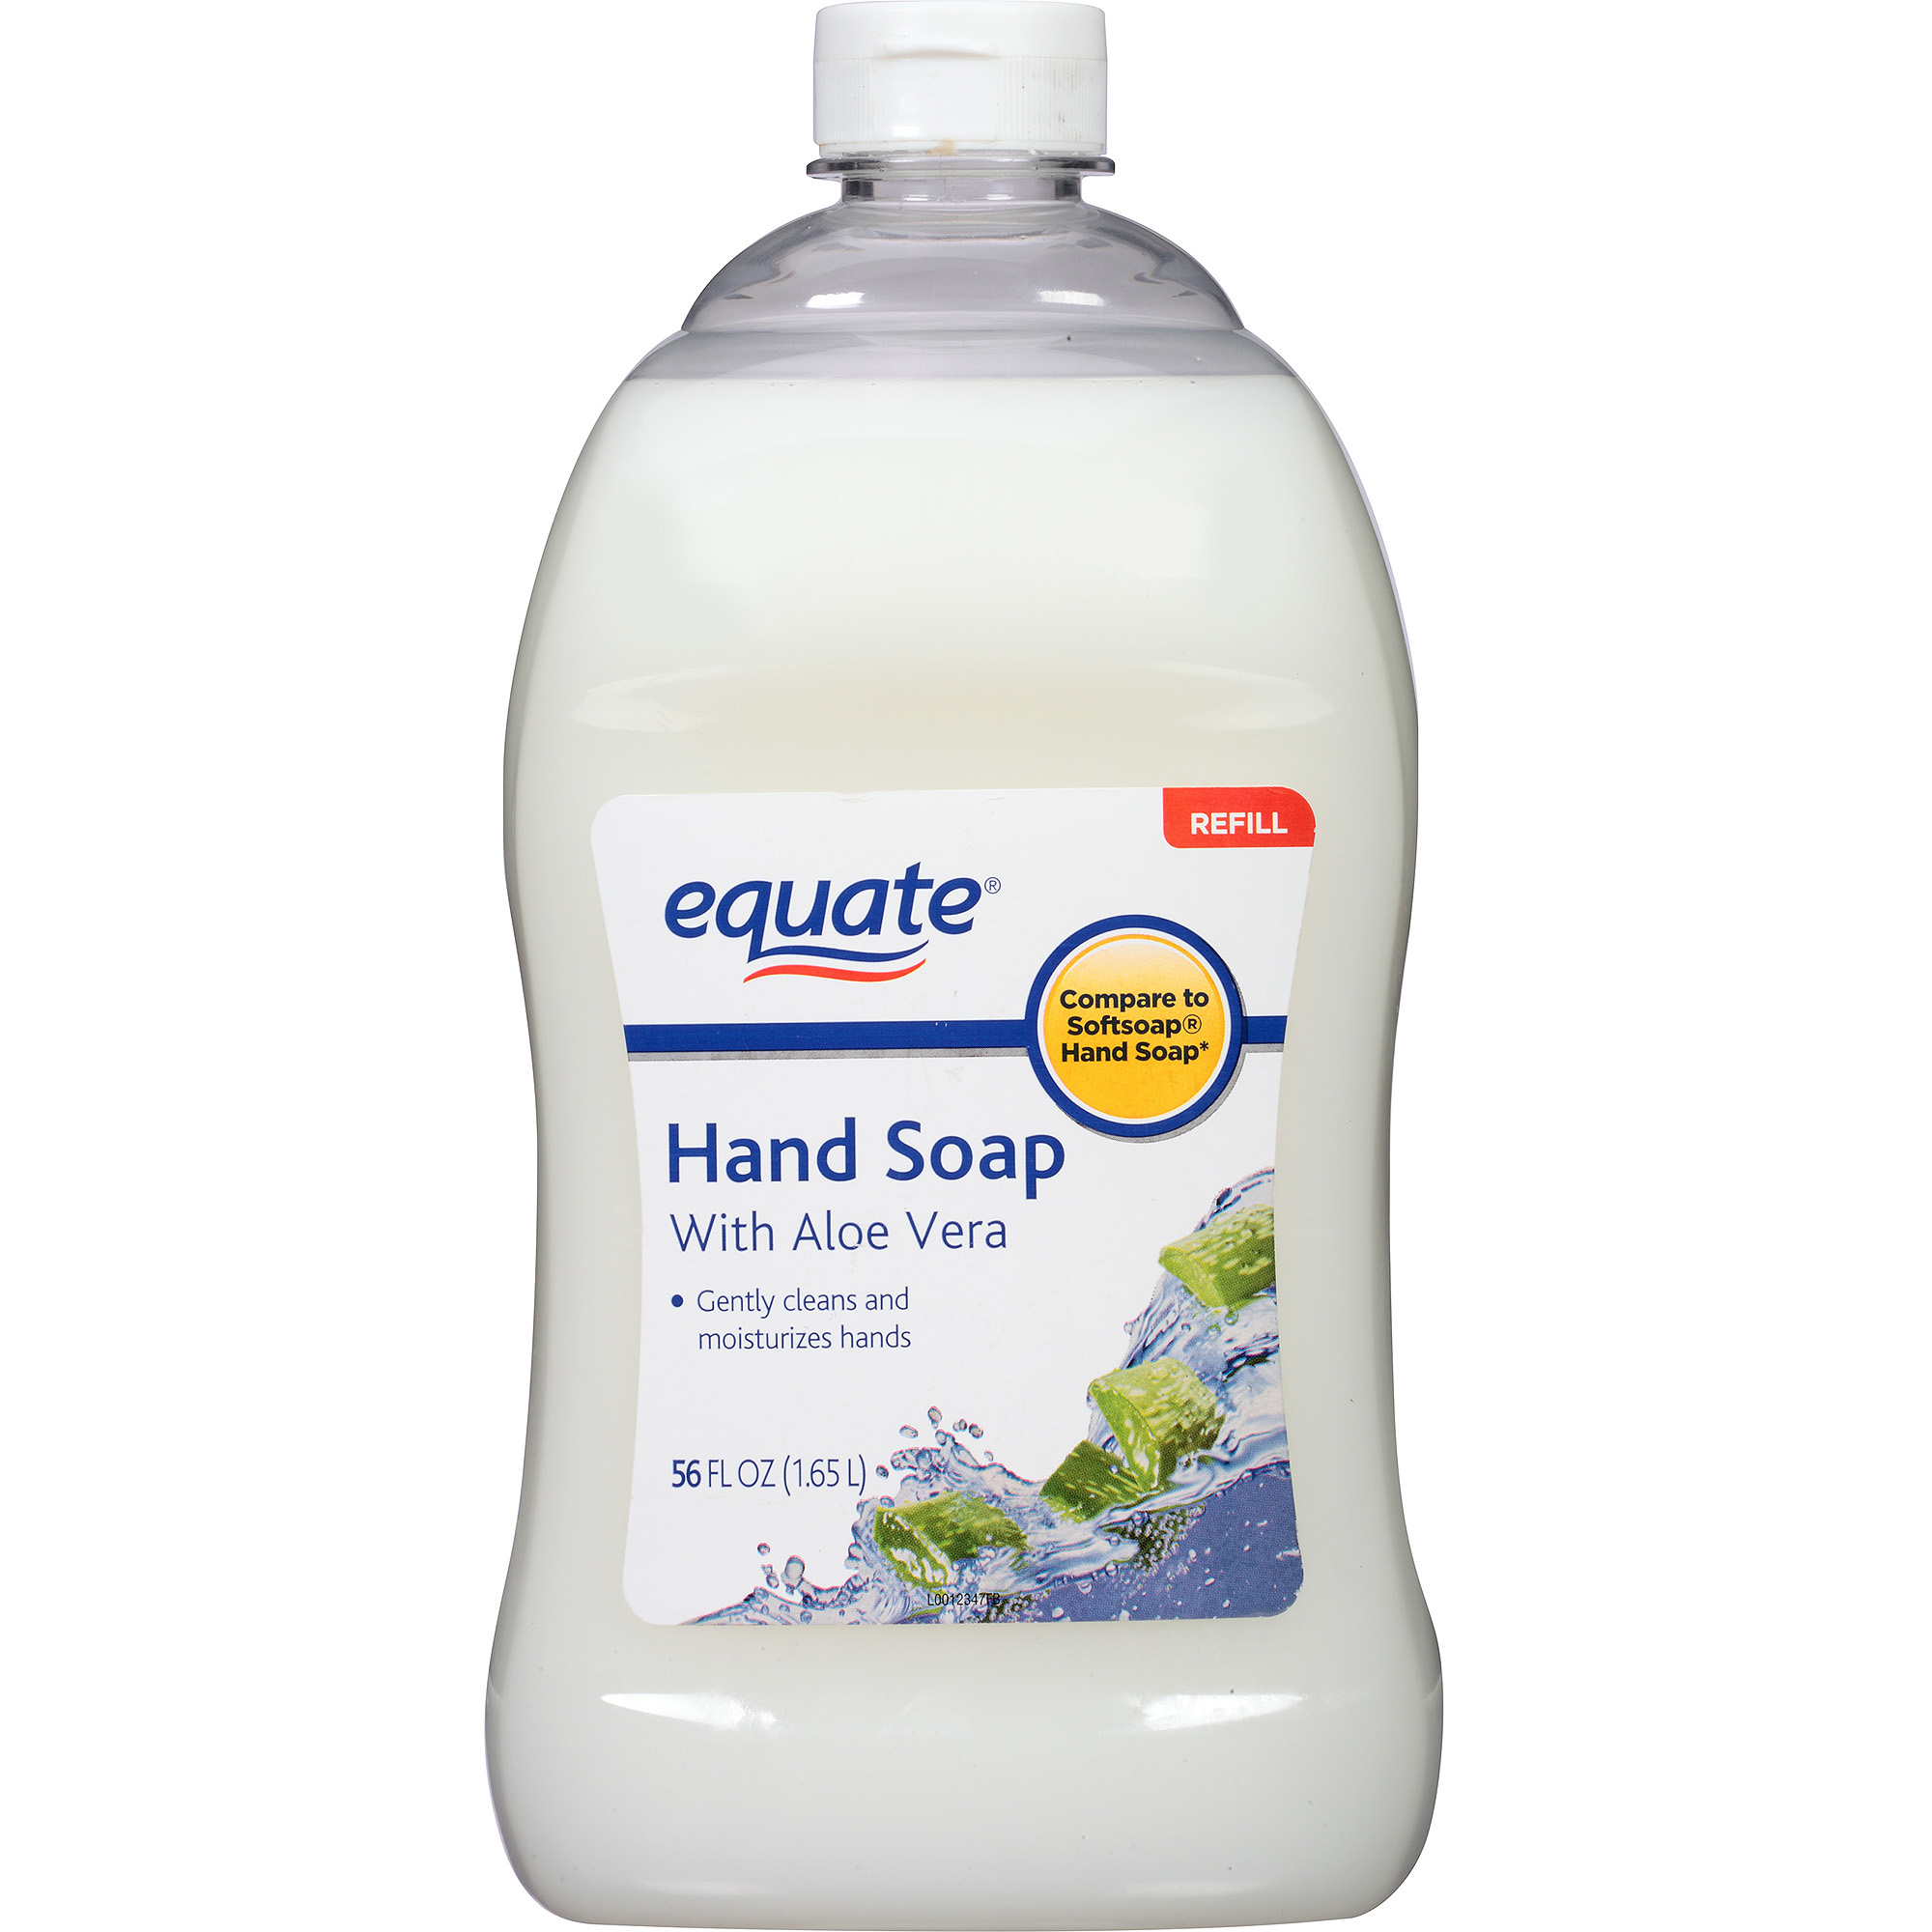 Equate Liquid Hand Soap with Aloe Vera Refill, 56 fl oz